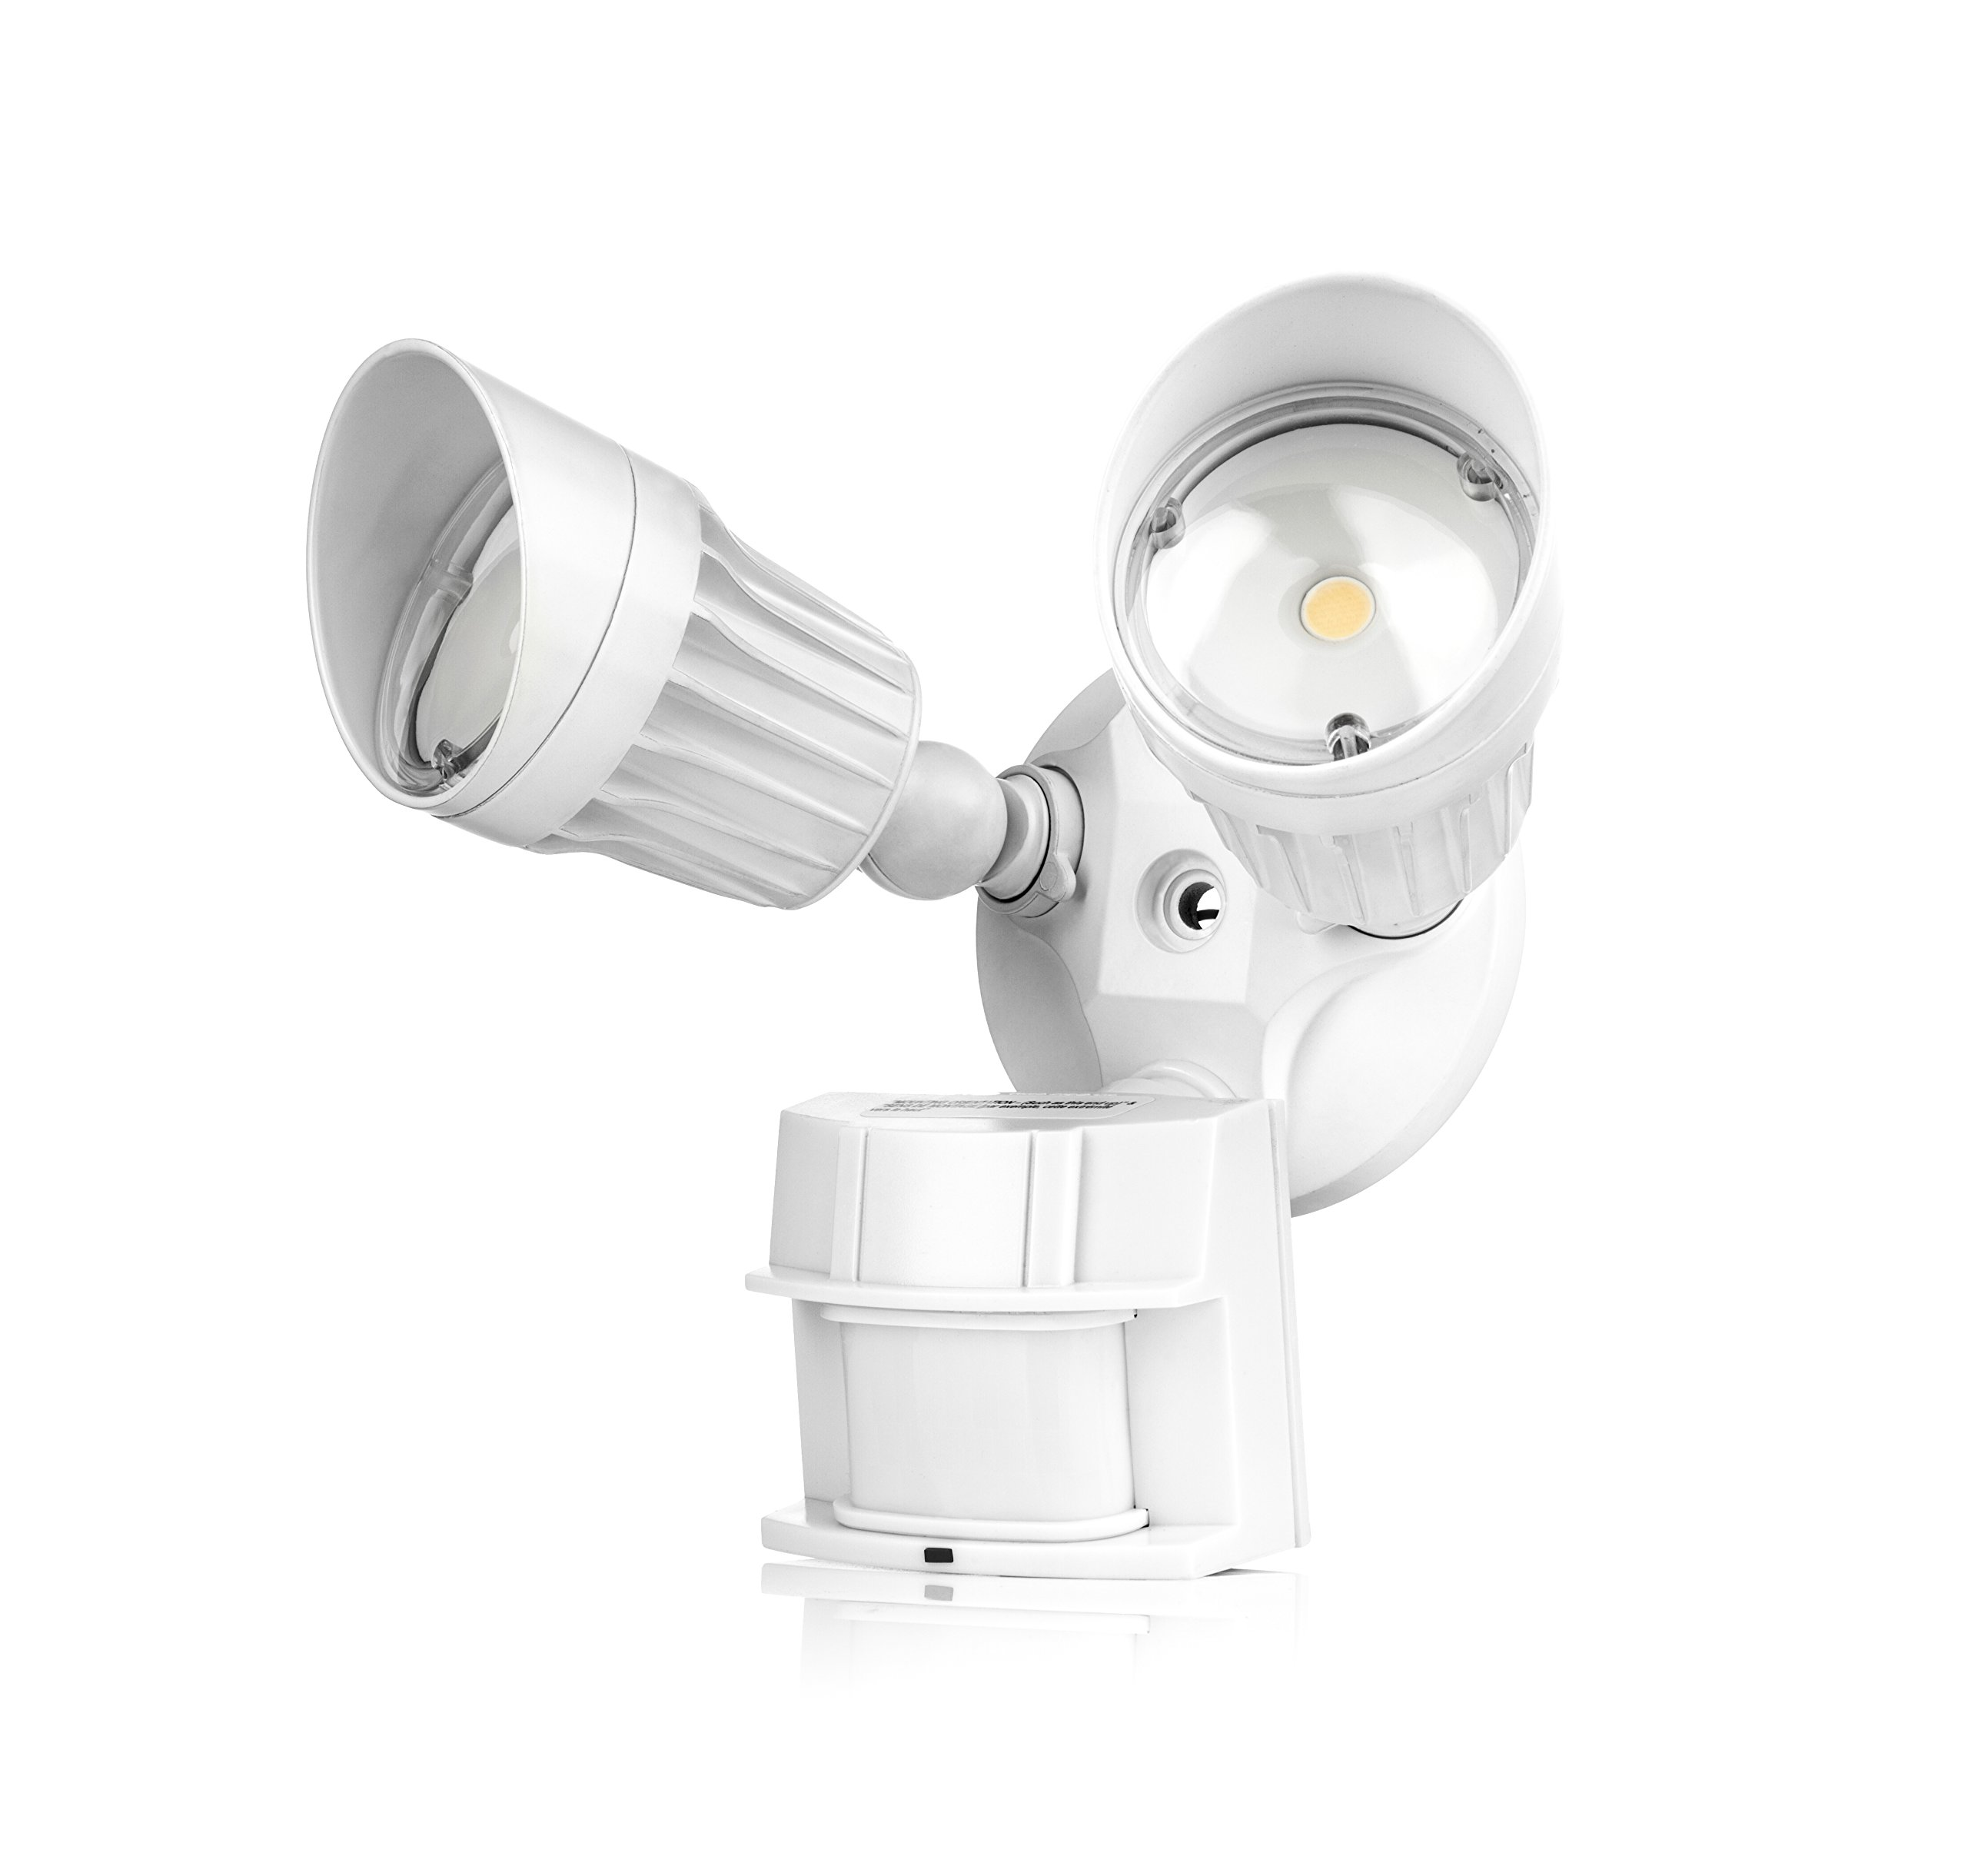 Motion Sensing Outdoor Security Lights: Hyperikon LED Security Light, 20W (100W Equivalent